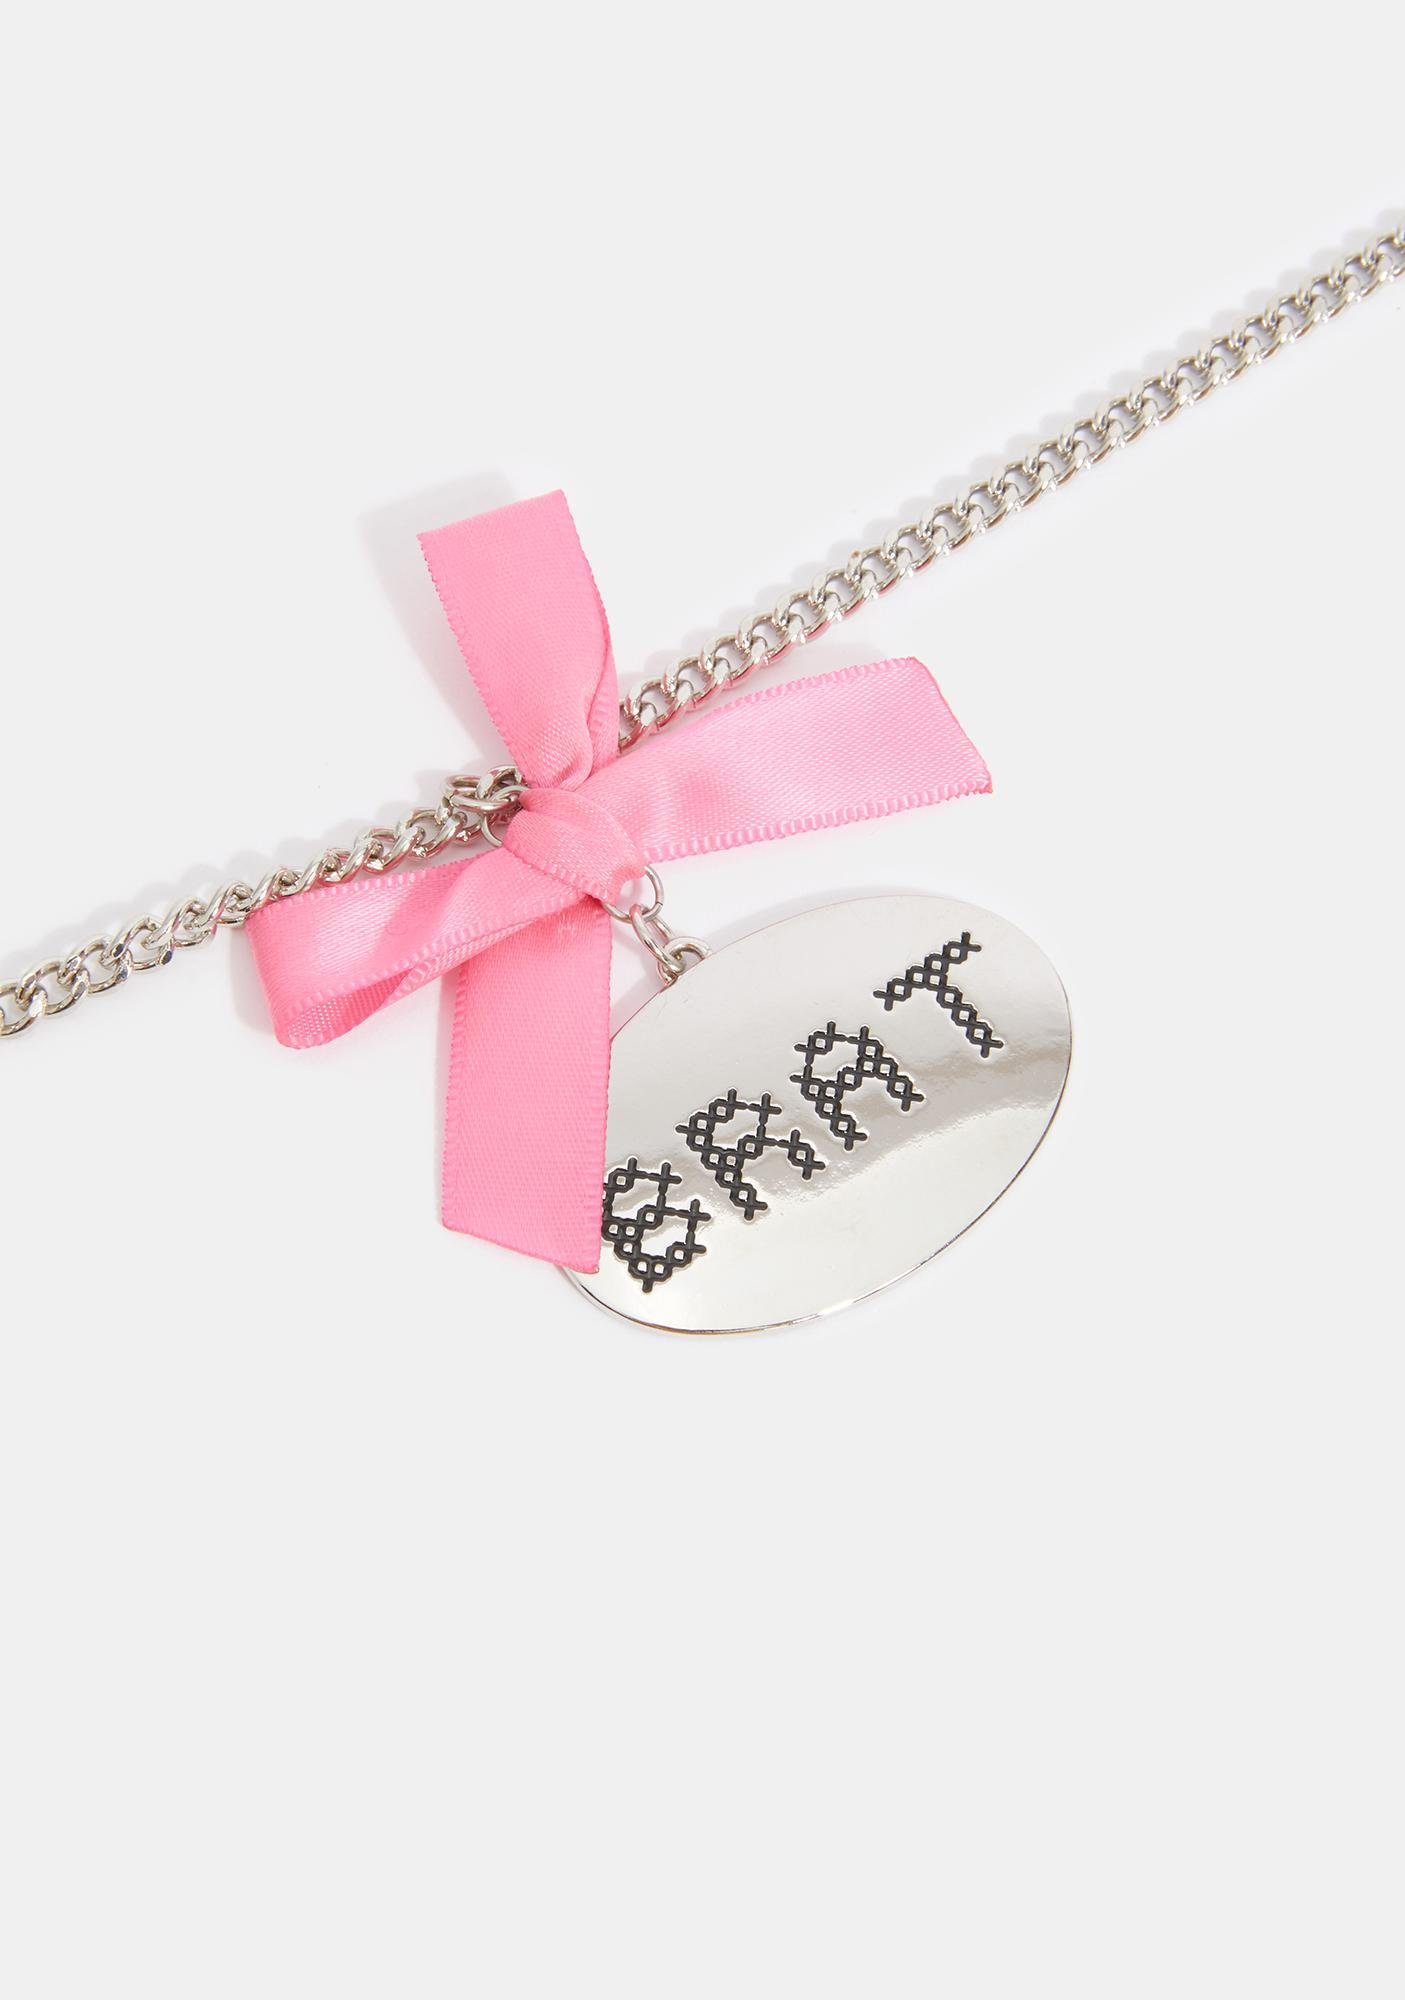 Humble Brat Charm Necklace